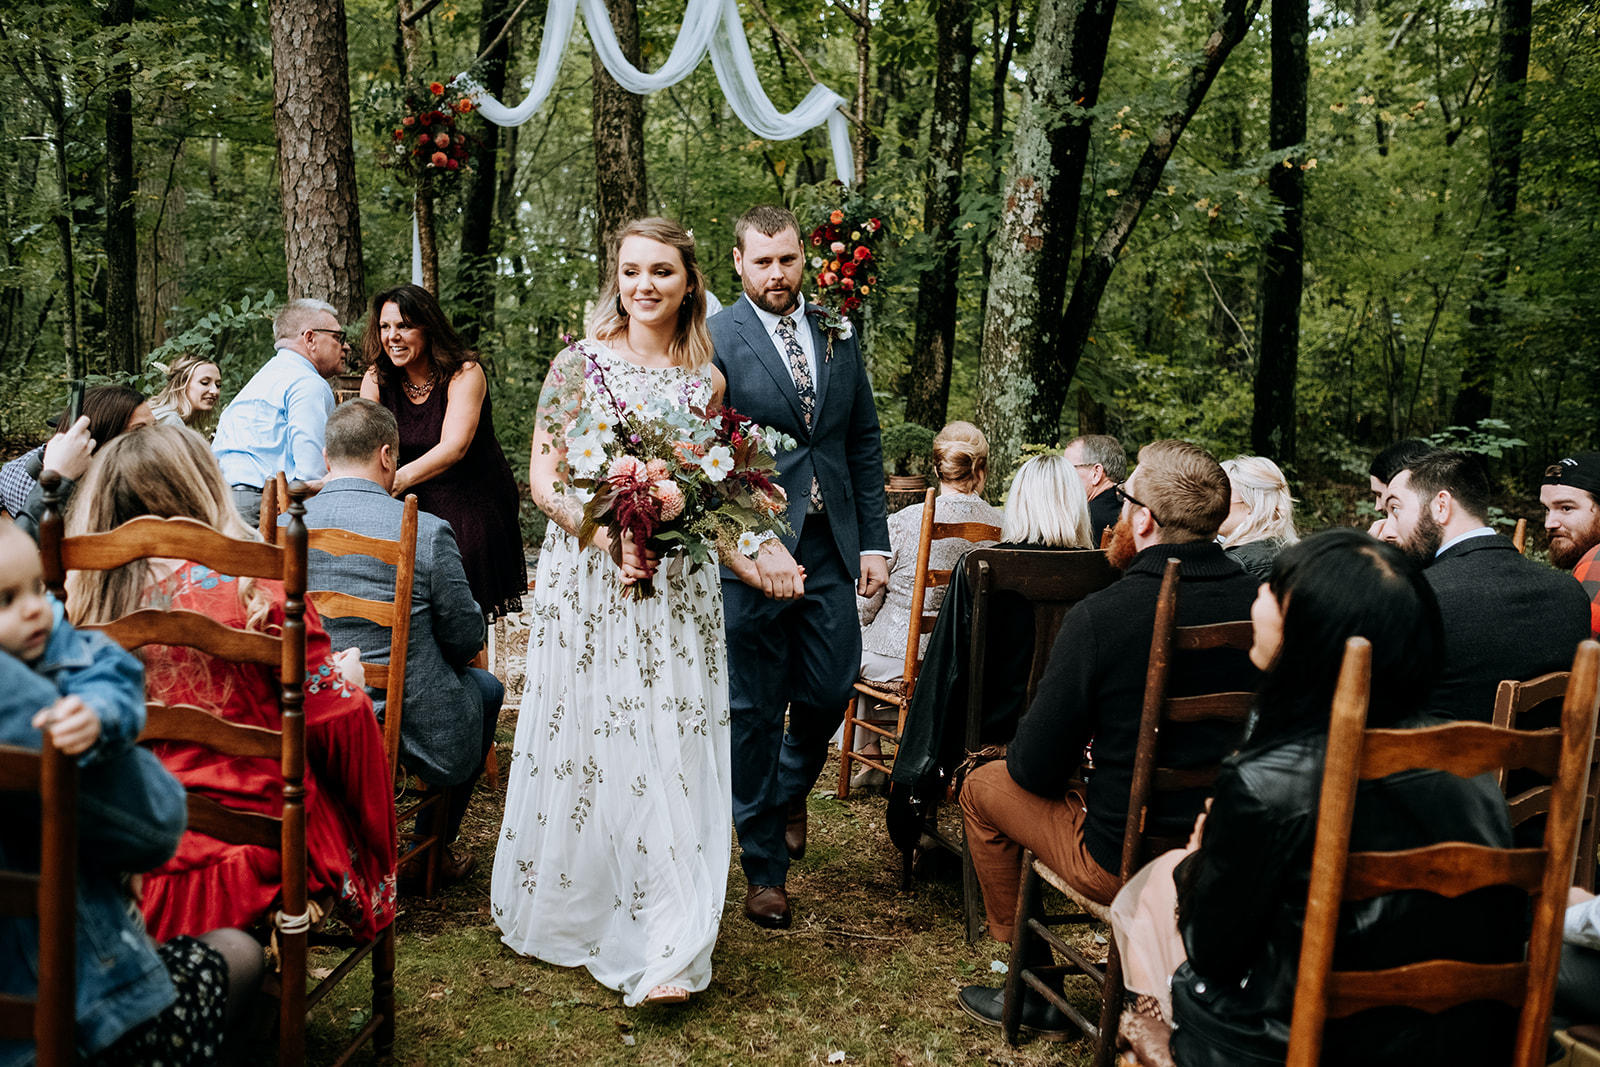 Wedding_Francis_Boucher_Gabby_Joel_Backyard_wedding_2018-253.jpg